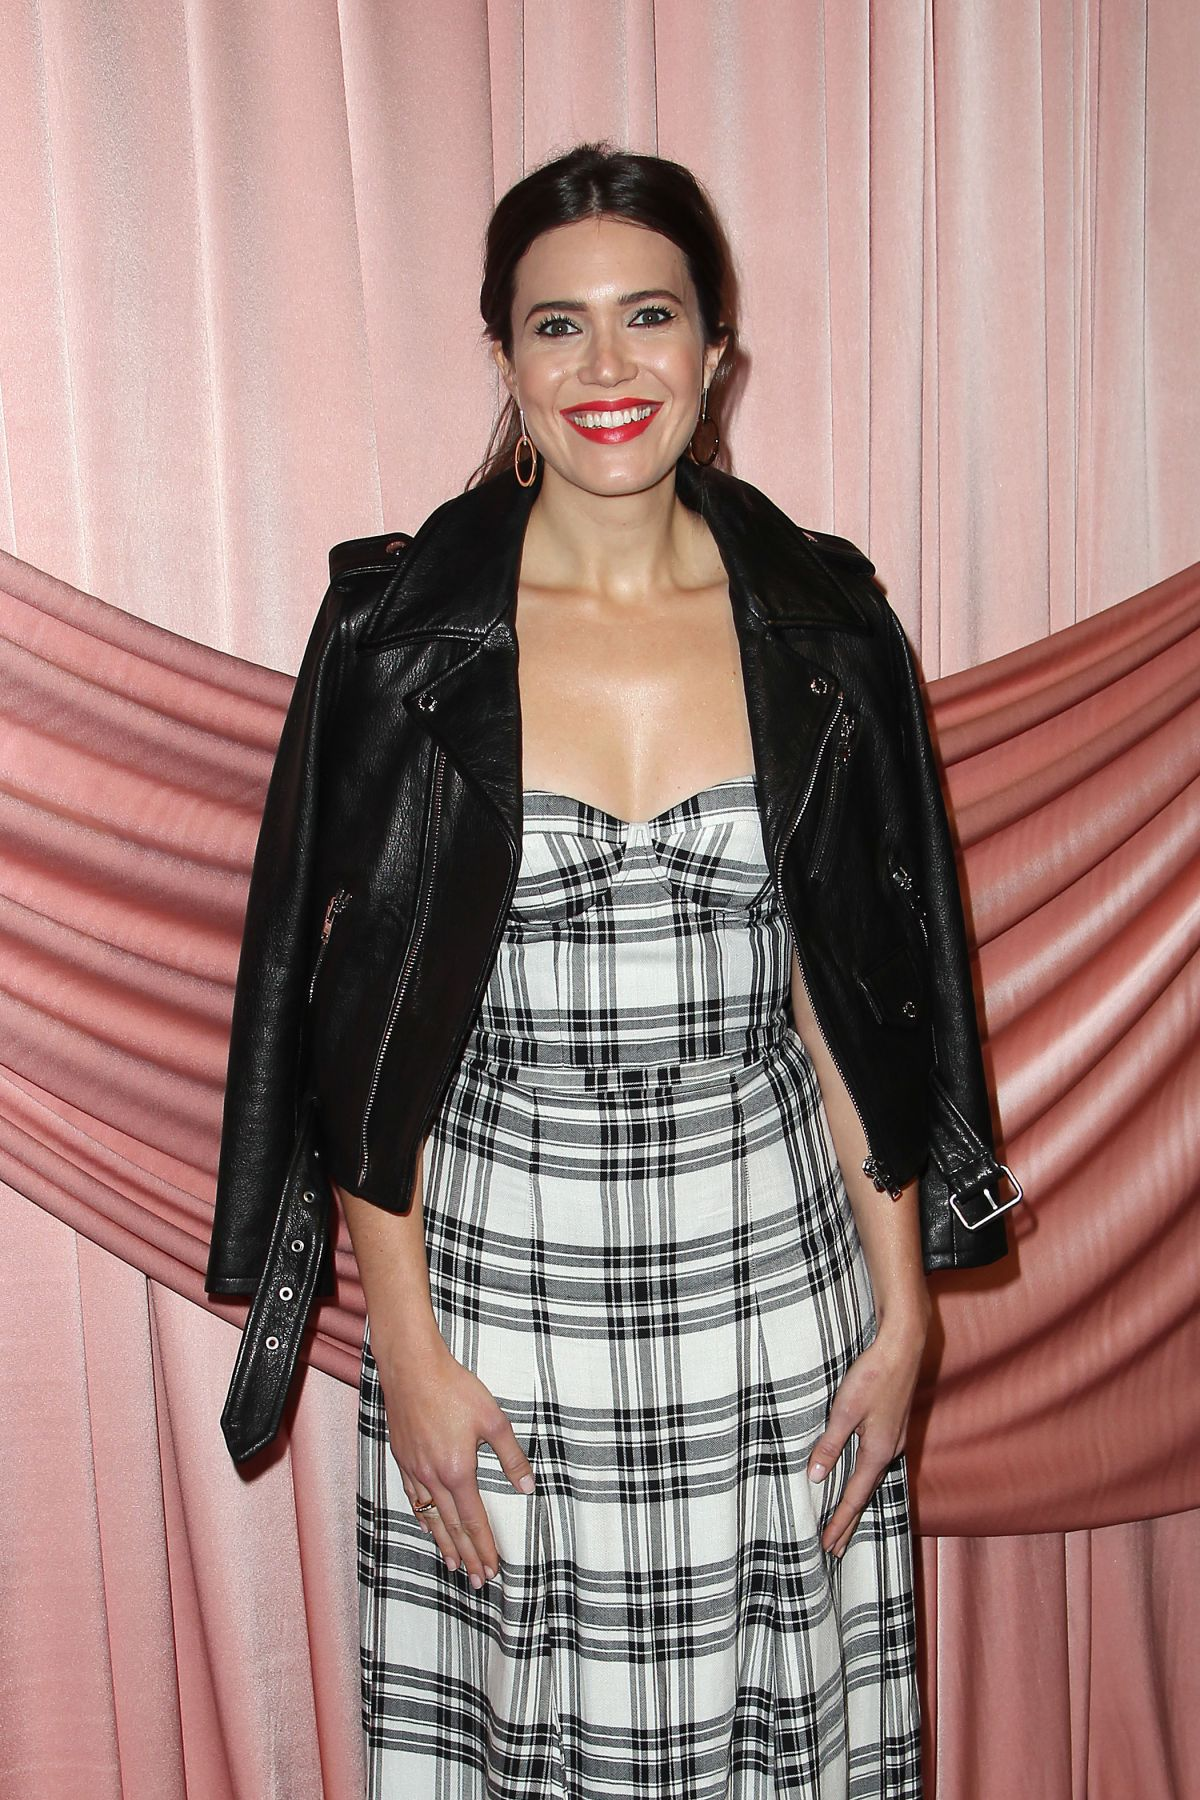 MANDY MOORE at Aice+Olivia by Stacey Bendet Presentation in New York 02/14/2017   mandy-moore-at-aice-olivia-by-stacey-bendet-presentation-in-new-york-02-14-2017_8